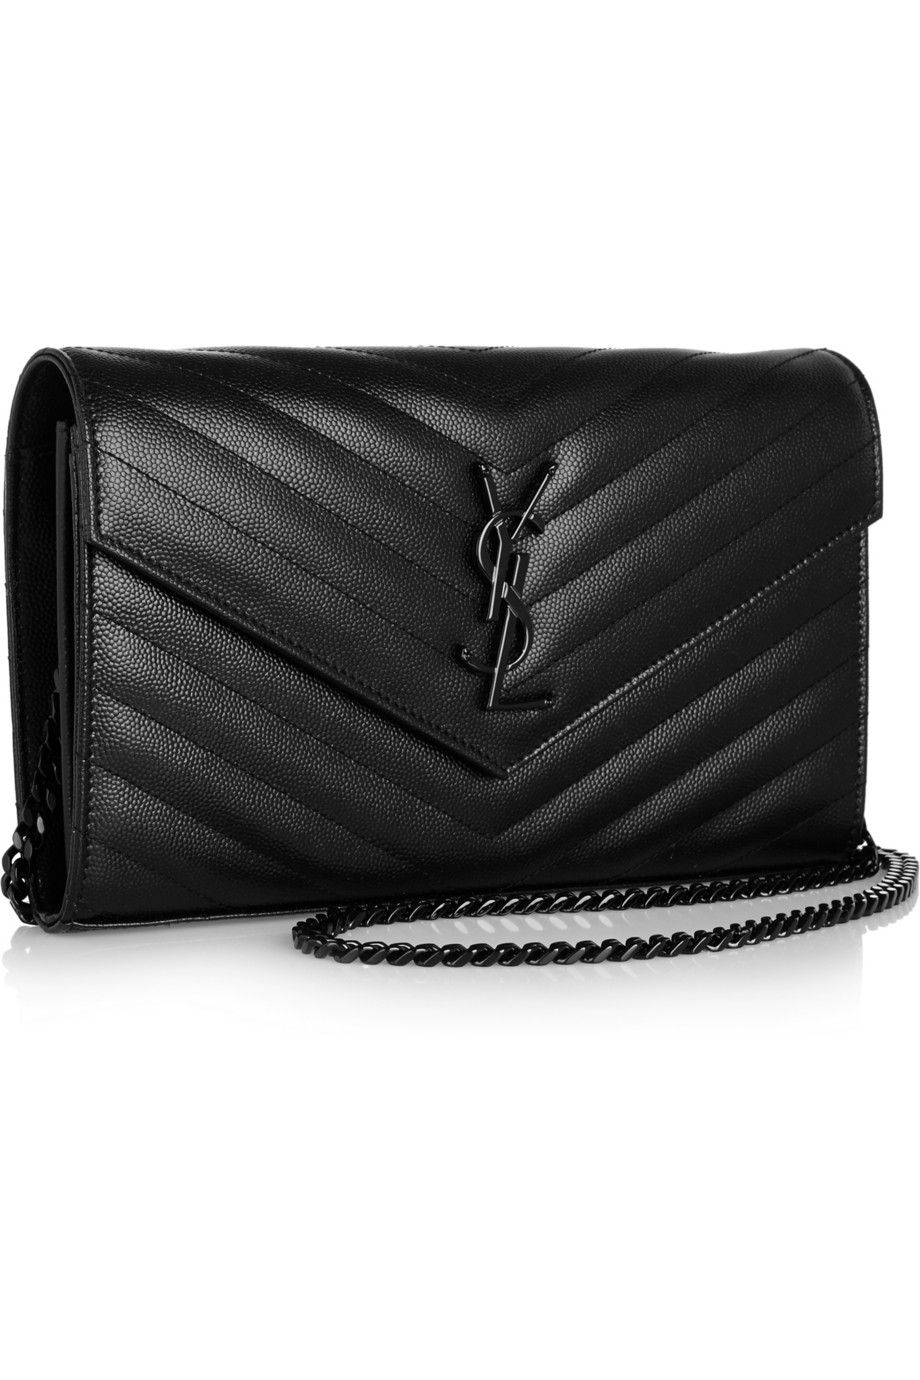 Saint Laurent Monogramme Textured Leather Shoulder Bag